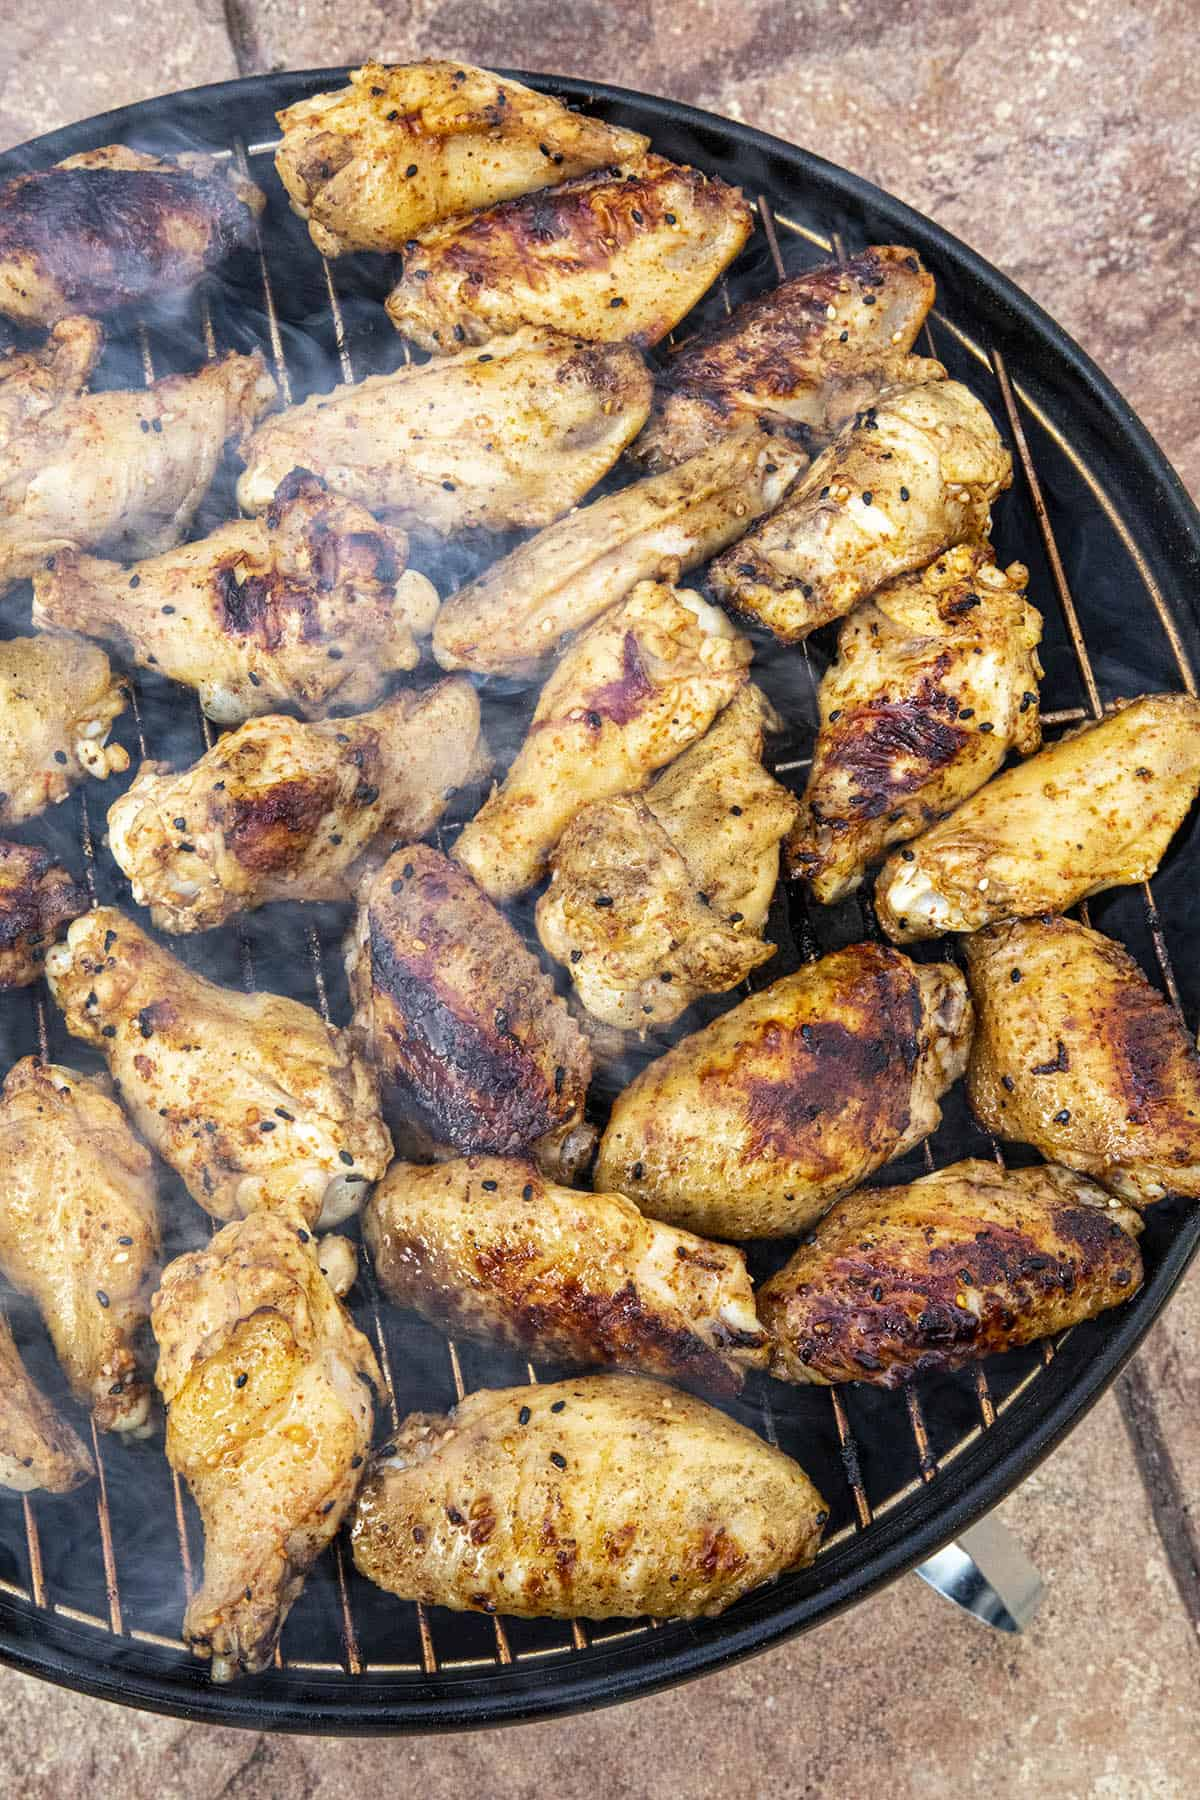 Grilled chicken on the grill, nicely charred